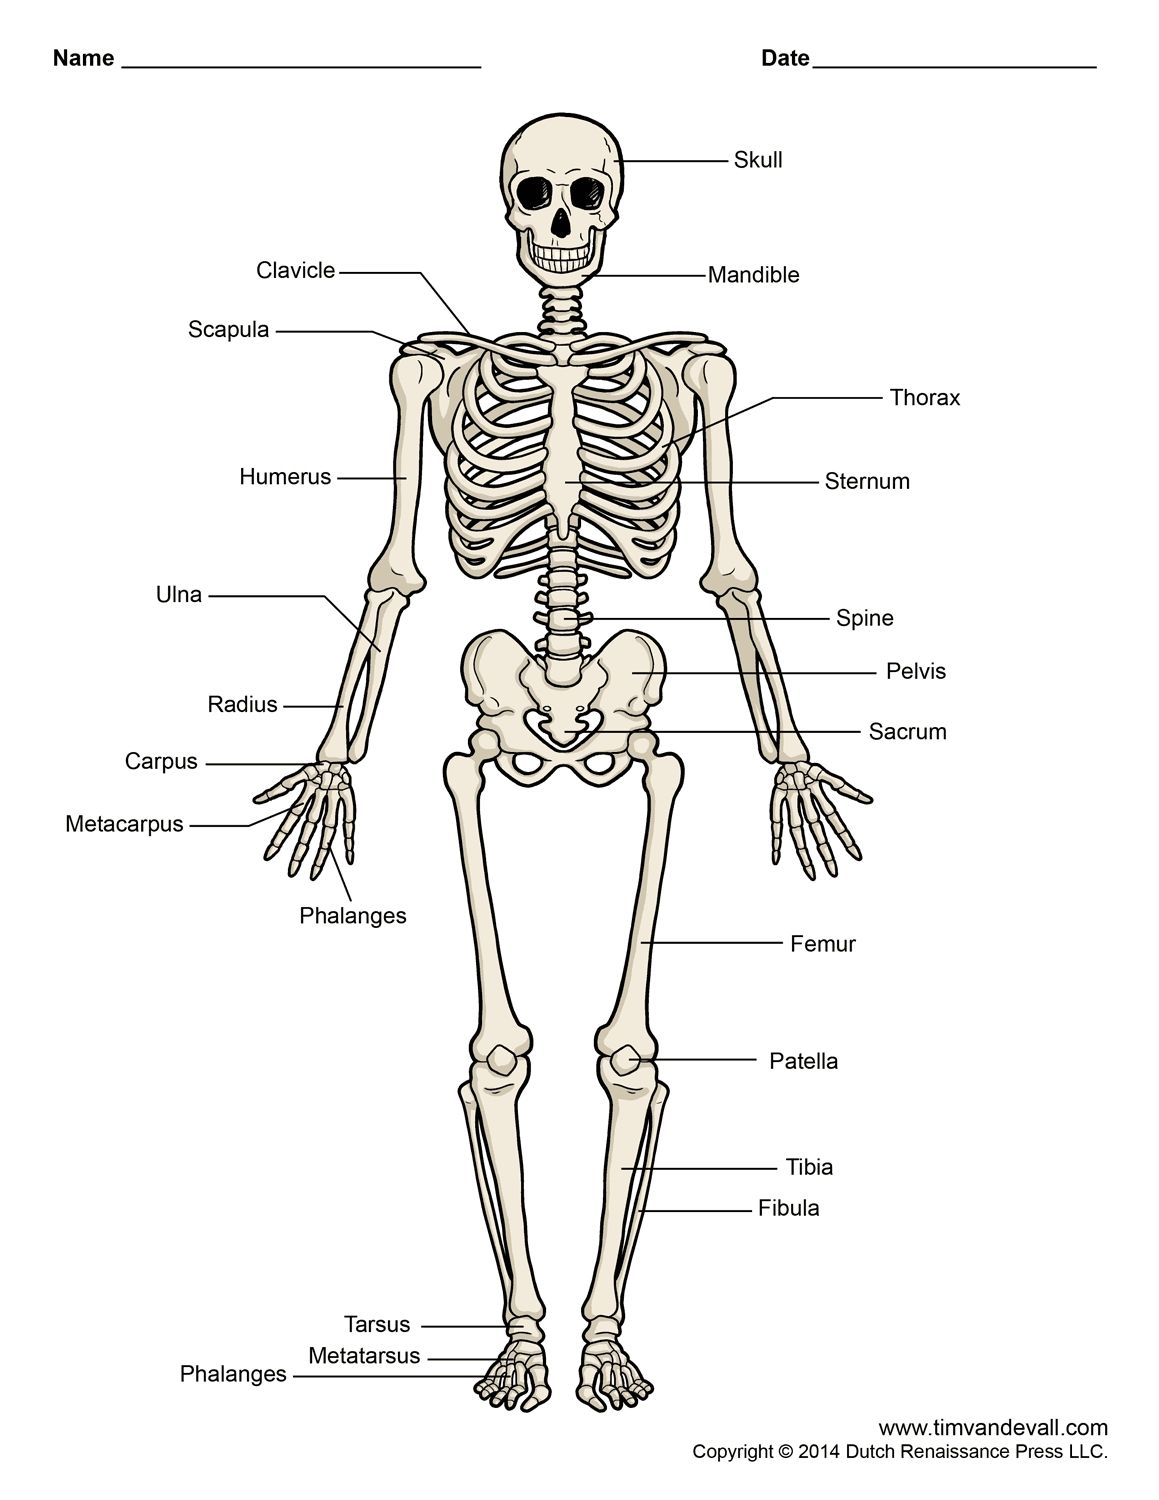 small resolution of diagram of human skeleton labeled printable human skeleton diagram rh pinterest com unlabeled human skeleton diagram back printable human skeleton diagram